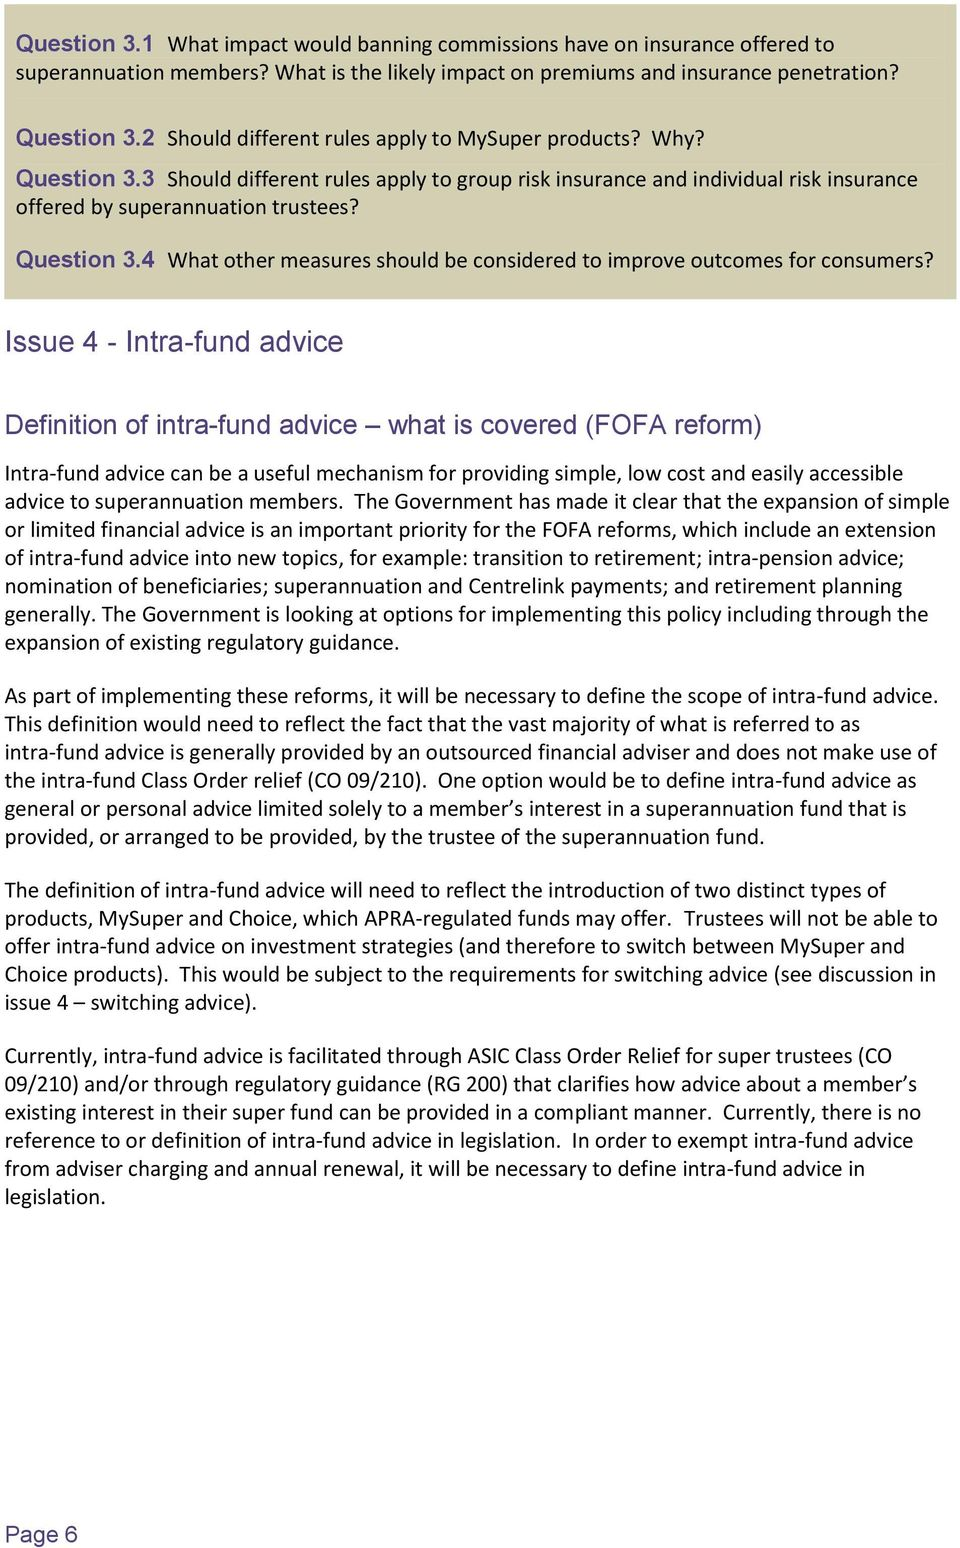 Issue 4 - Intra-fund advice Definition of intra-fund advice what is covered (FOFA reform) Intra-fund advice can be a useful mechanism for providing simple, low cost and easily accessible advice to